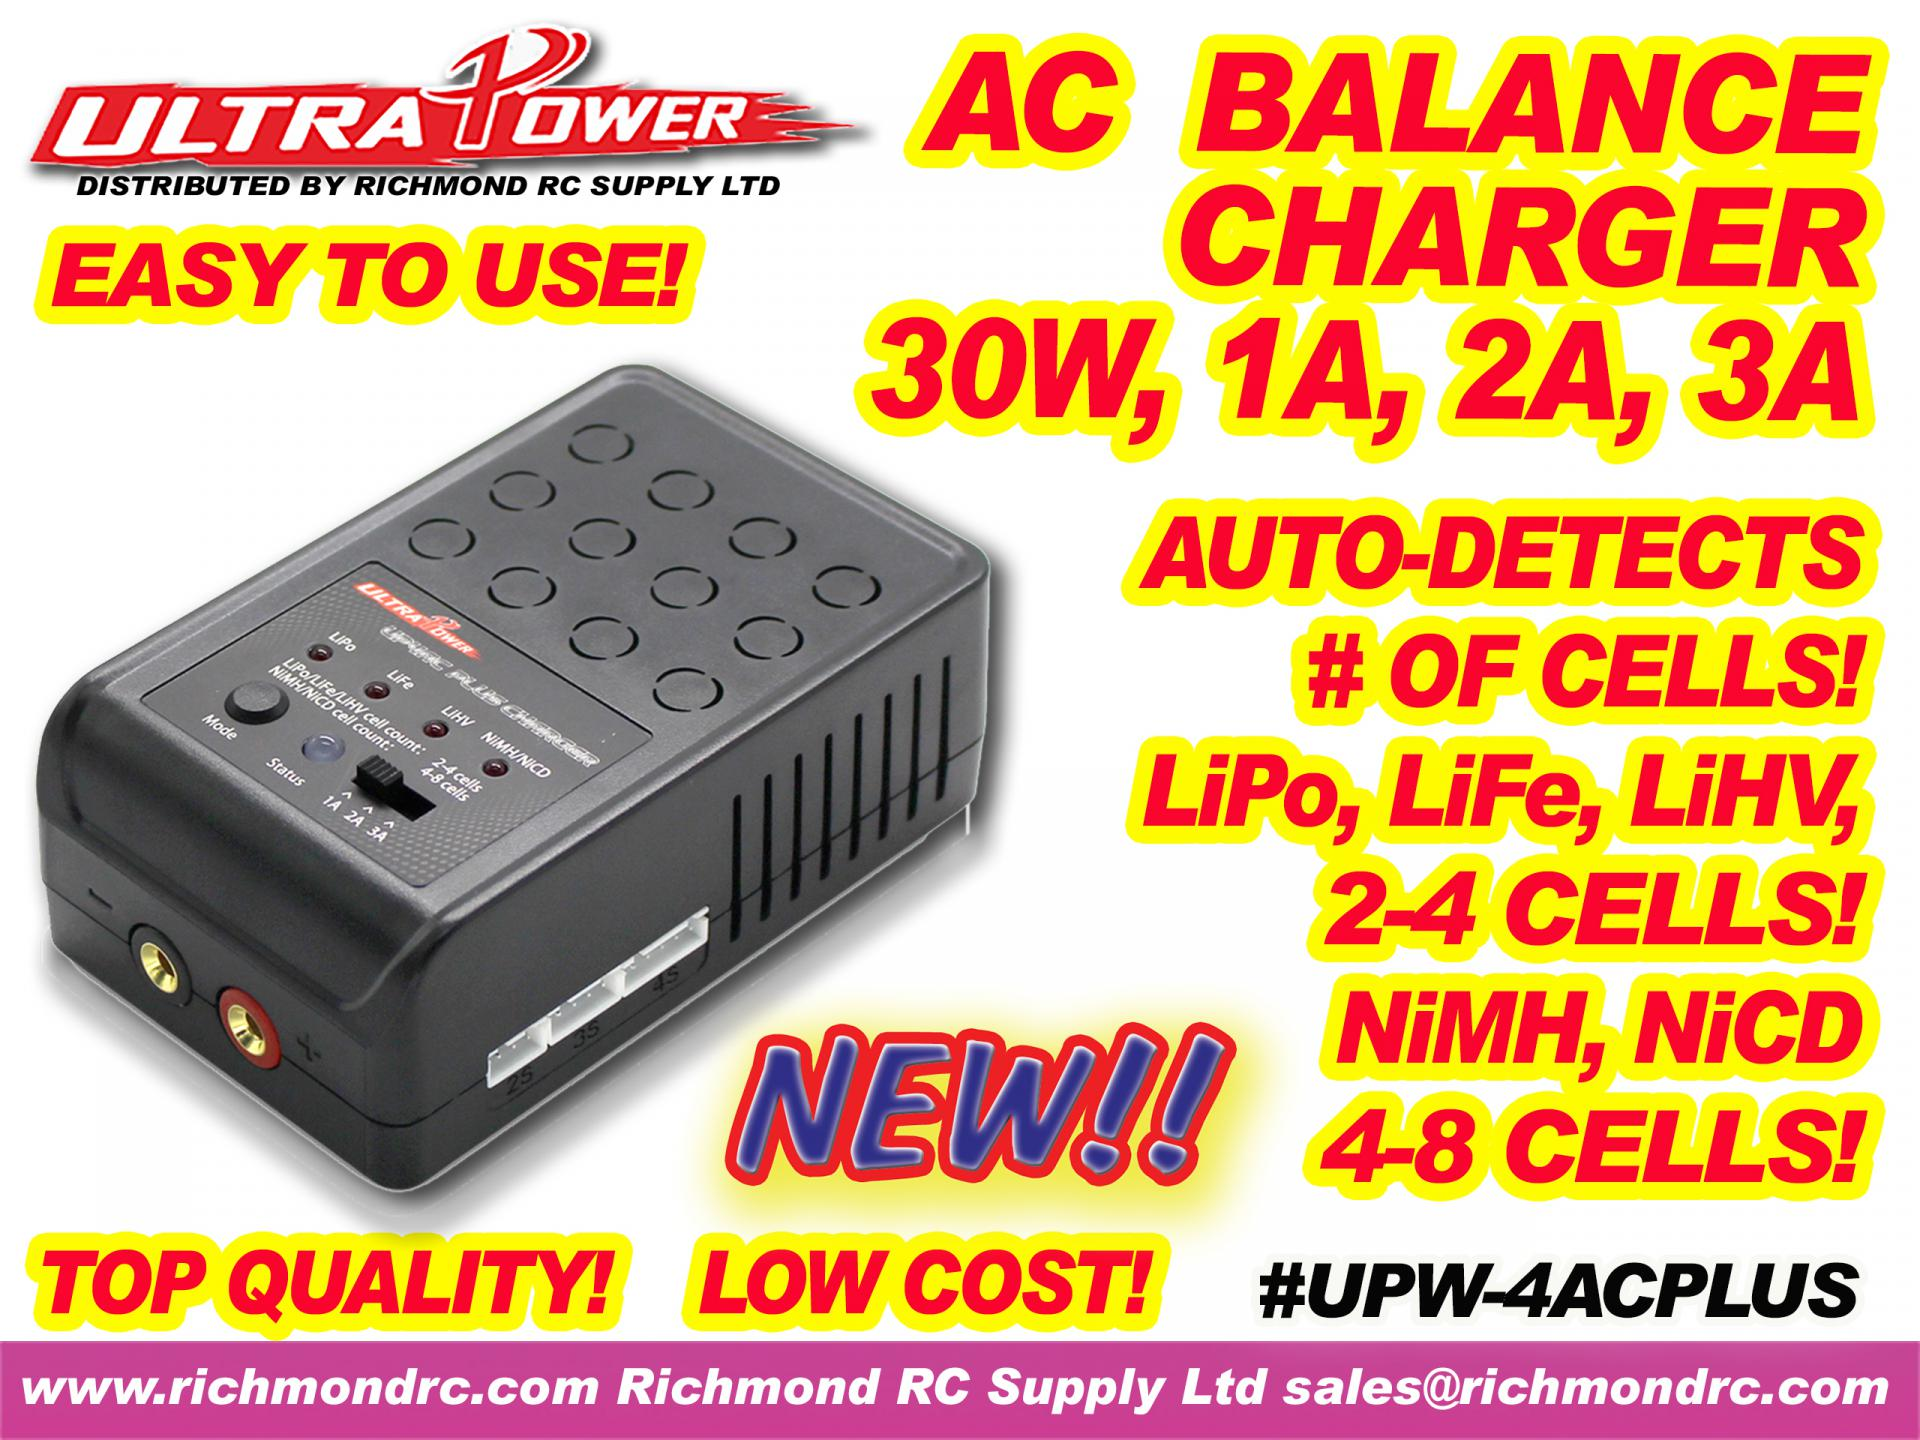 ULTRA POWER CHARGER - AC, 30W, 1A 2A 3A w/LED  [ 61008]